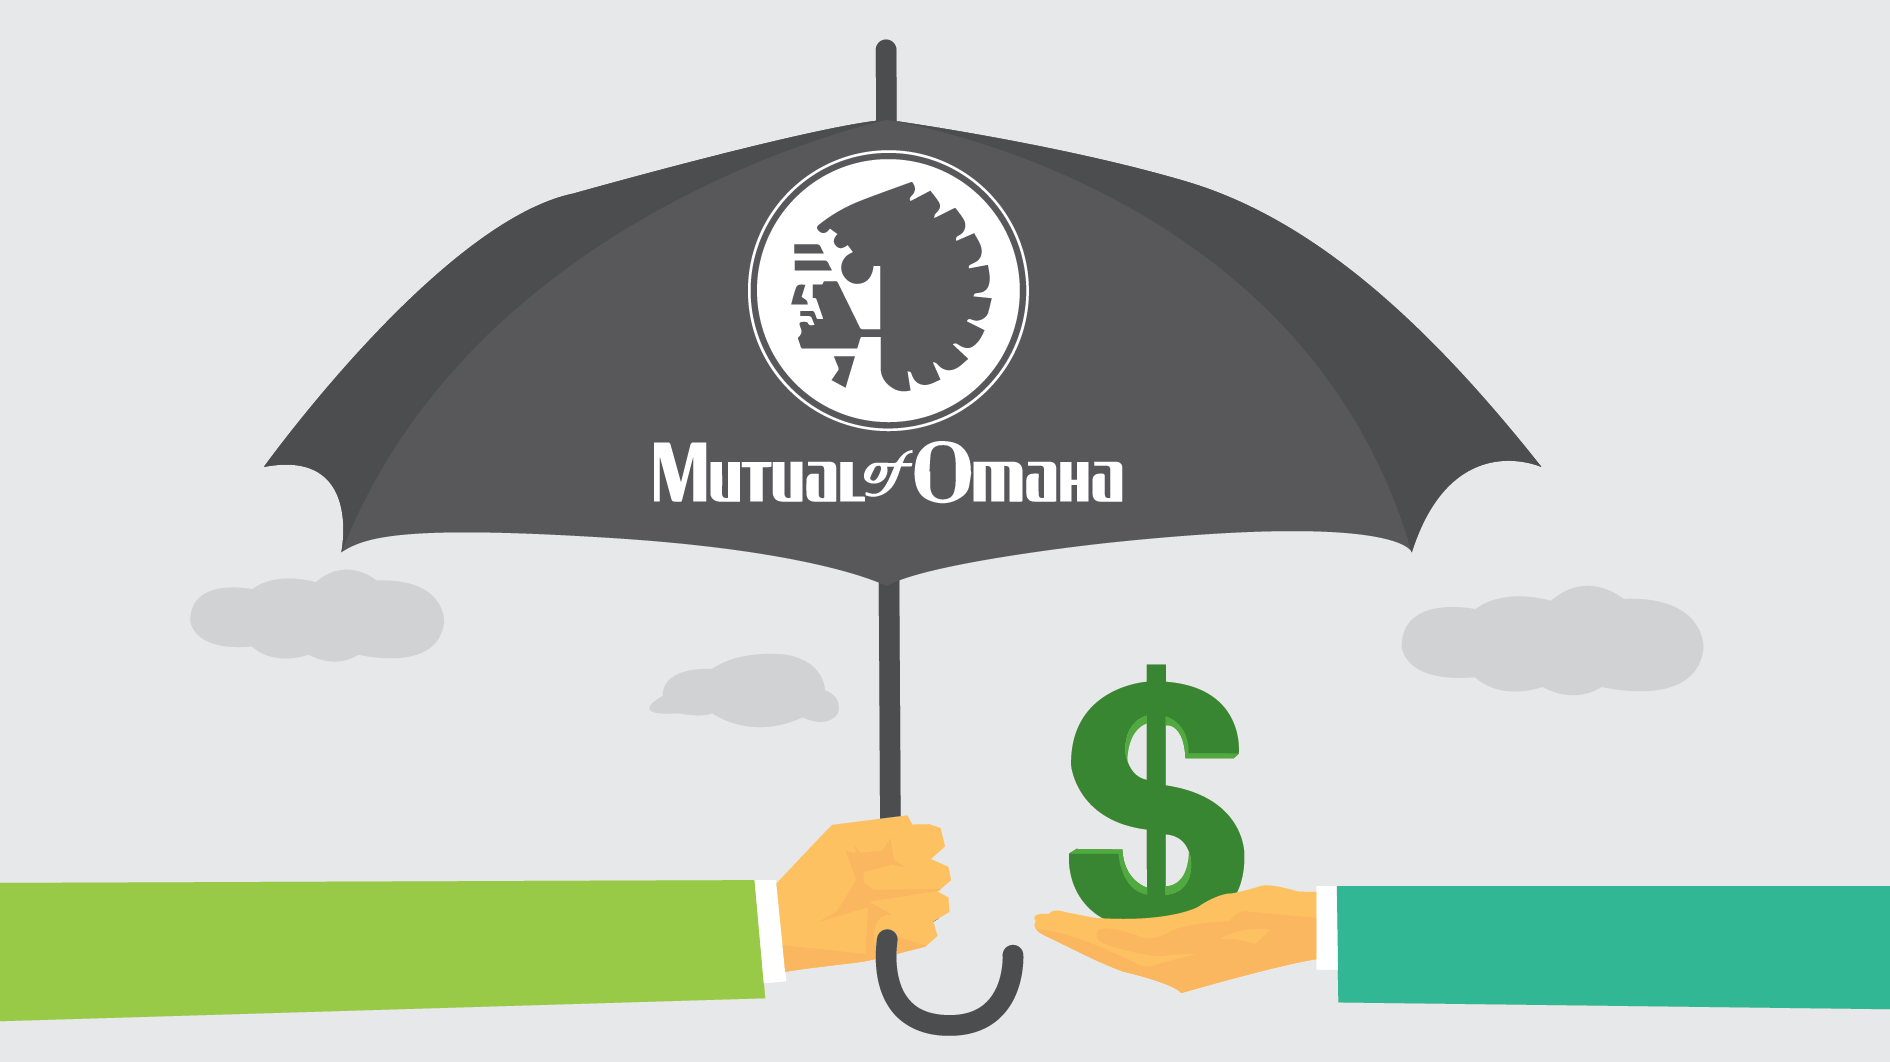 Mutual of omaha logo clipart picture free library Mutual of Omaha® Review - Quote.com® picture free library